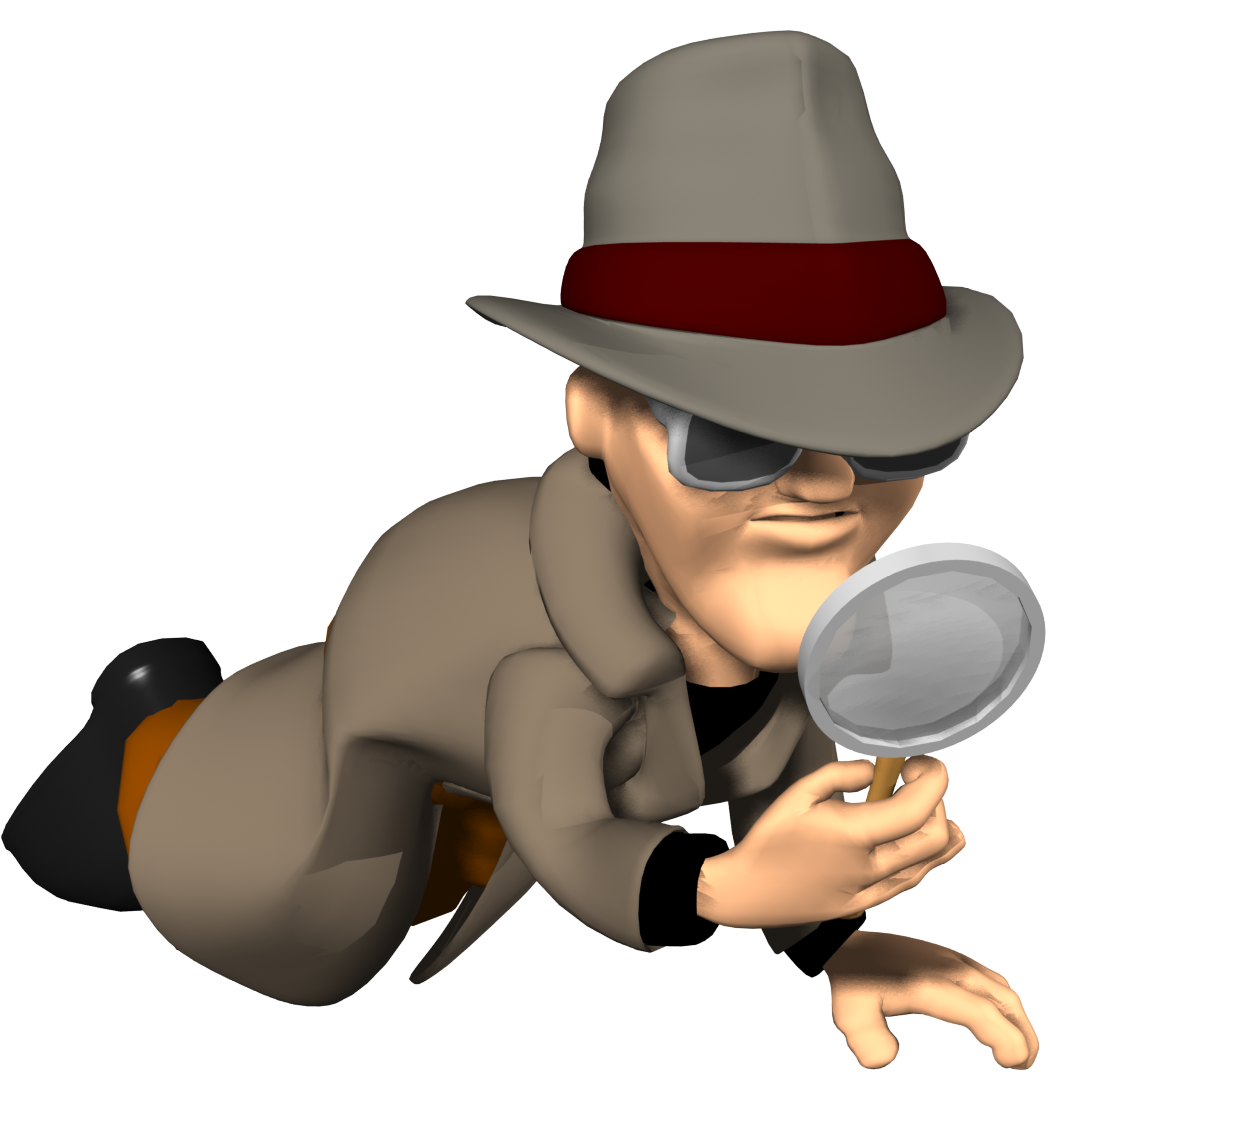 Free Private Investigator Photos, Download Free Clip Art.